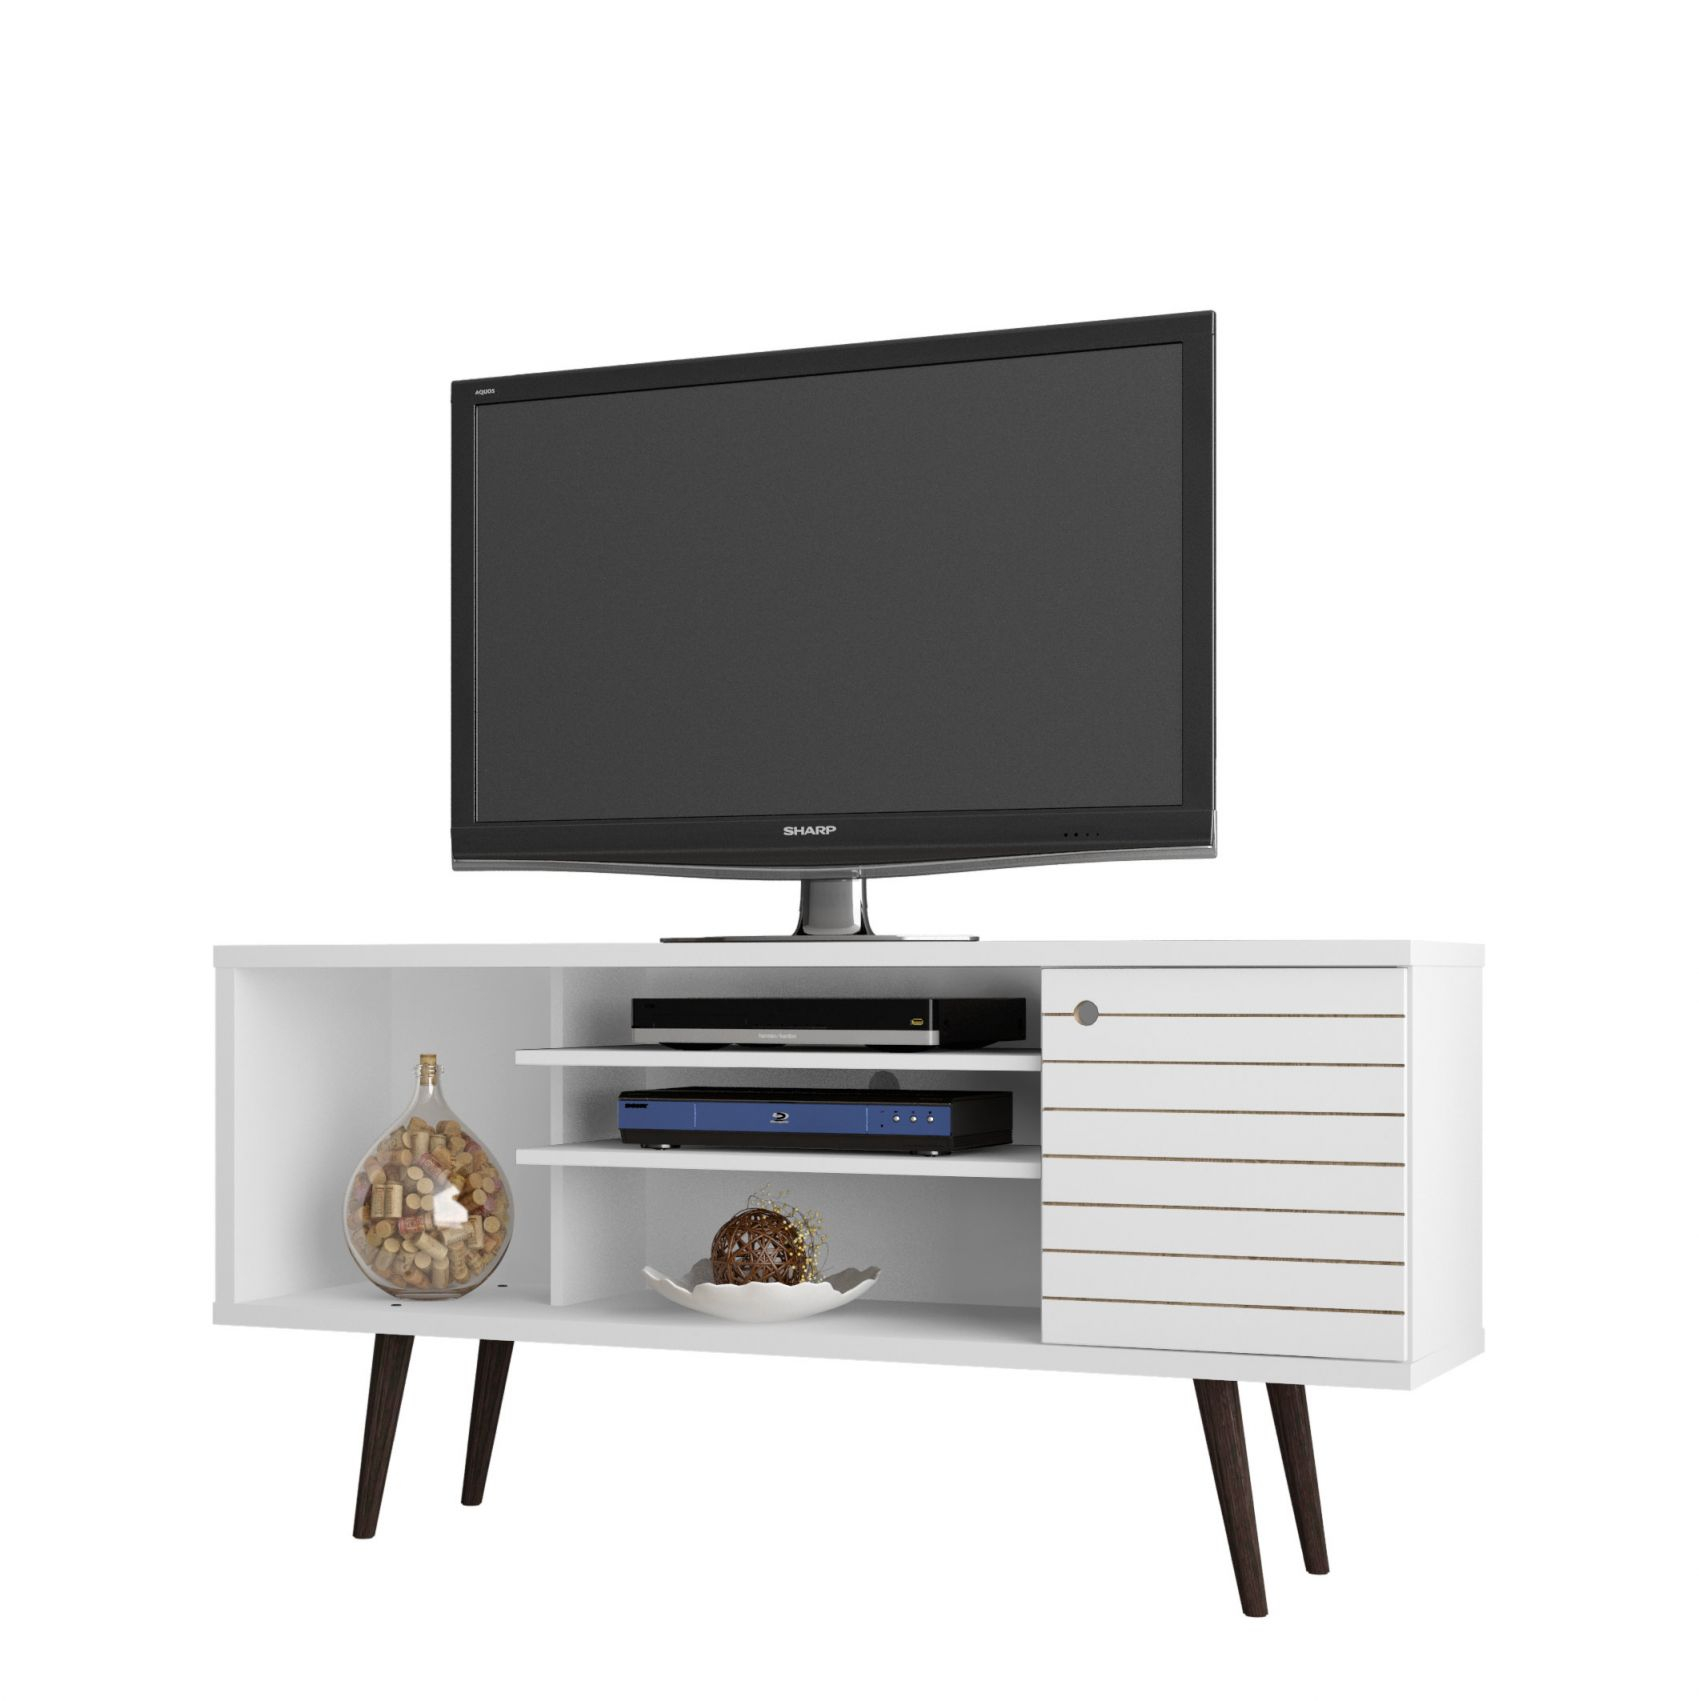 Allegra Tv Stand For Tvs Up To 50'' with Furniture Tv Stands